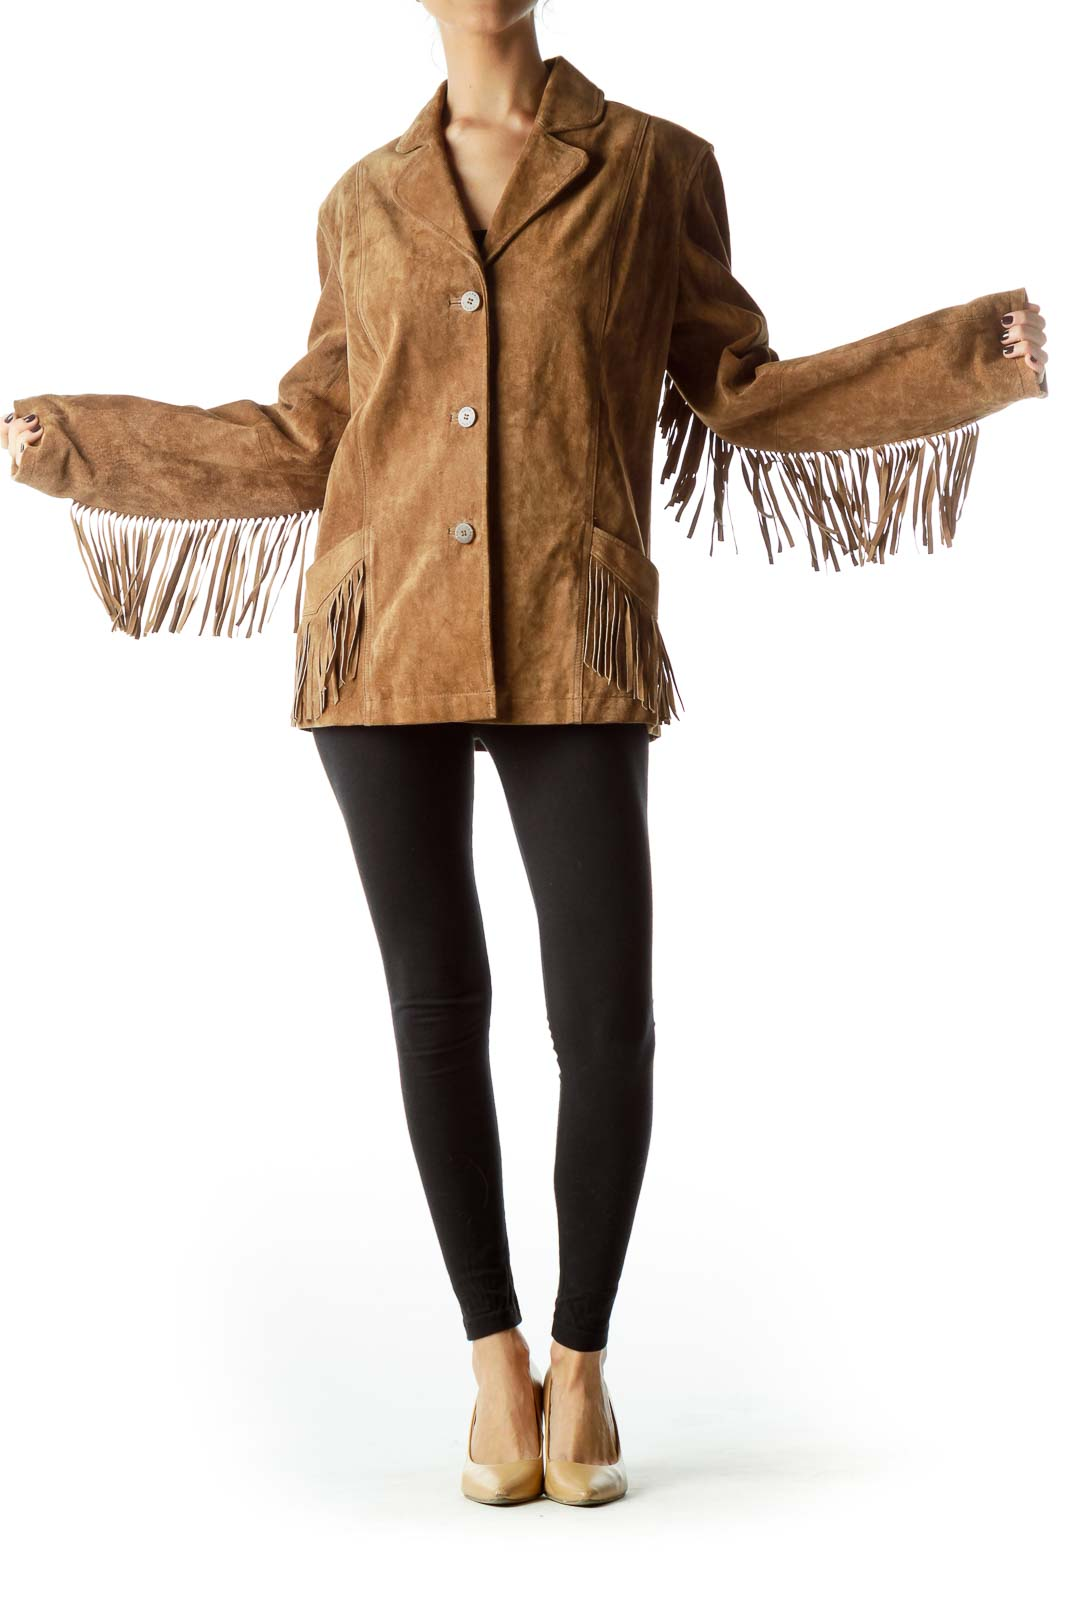 Brown Suede Leather Jacket with Fringe